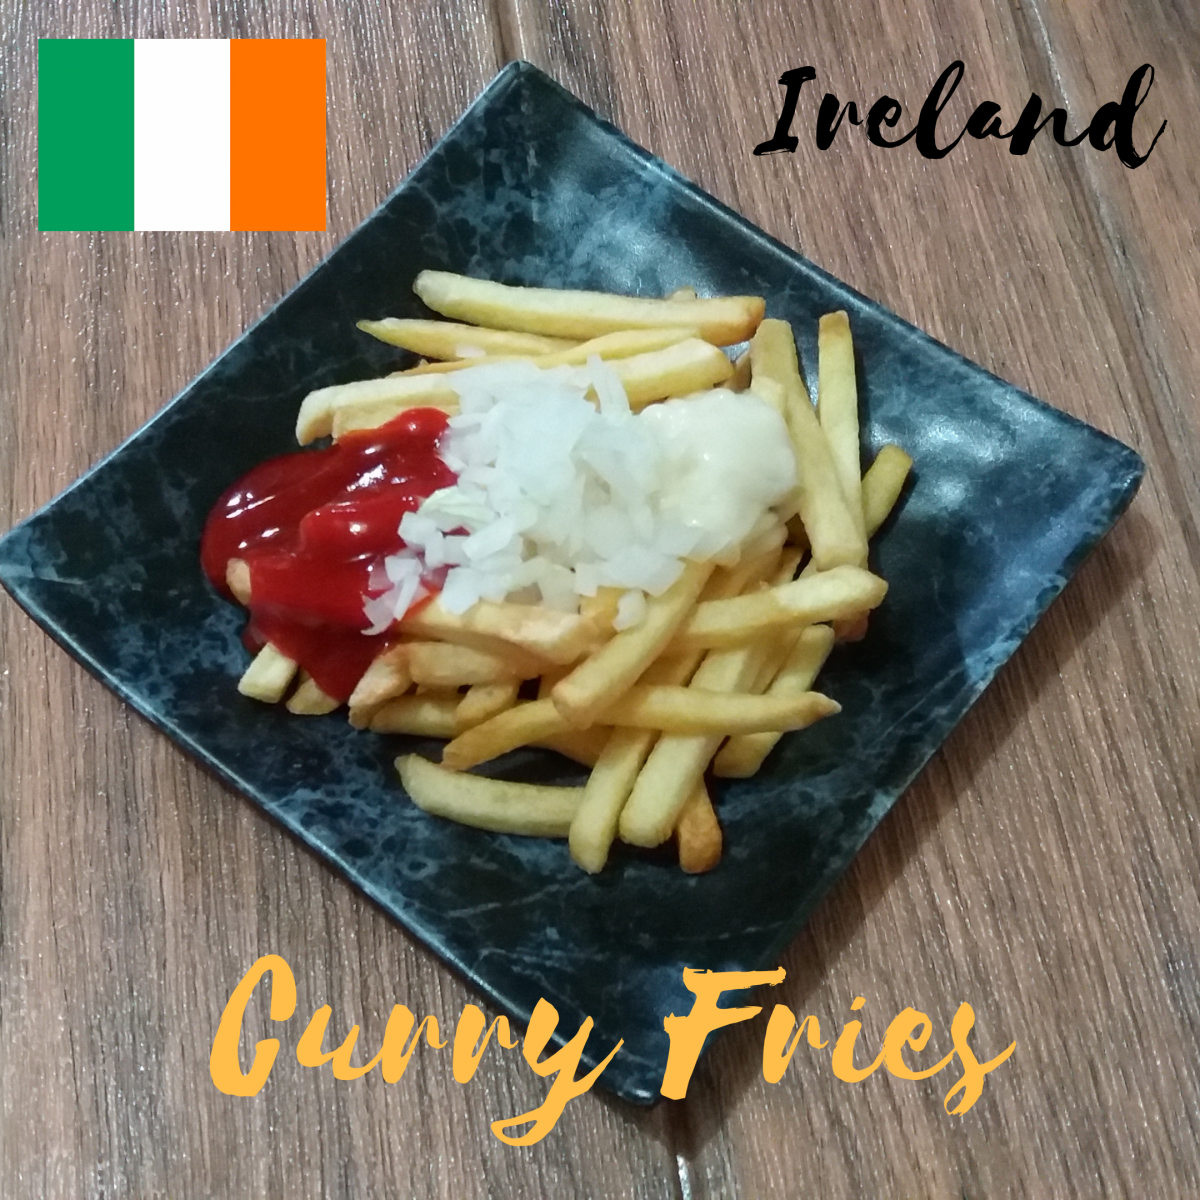 Learn how to cook curry fries.